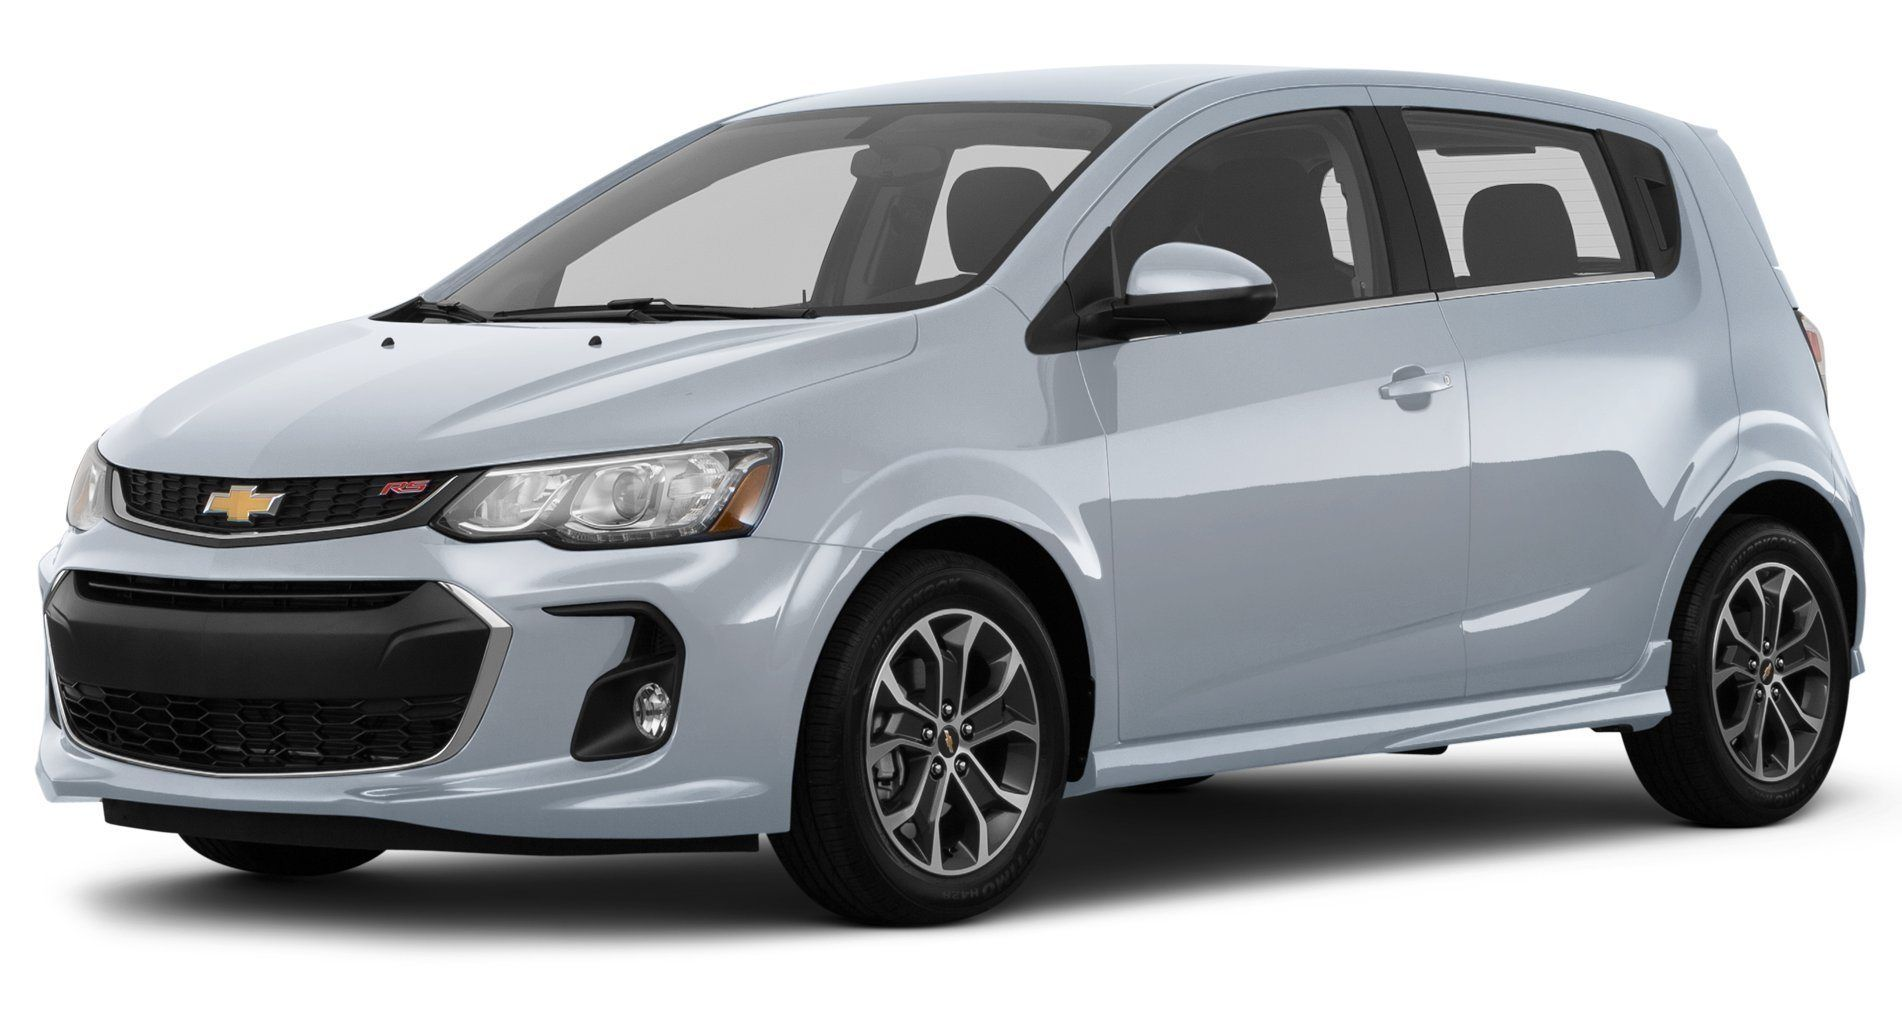 2021 Chevy Sonic Price and Release date